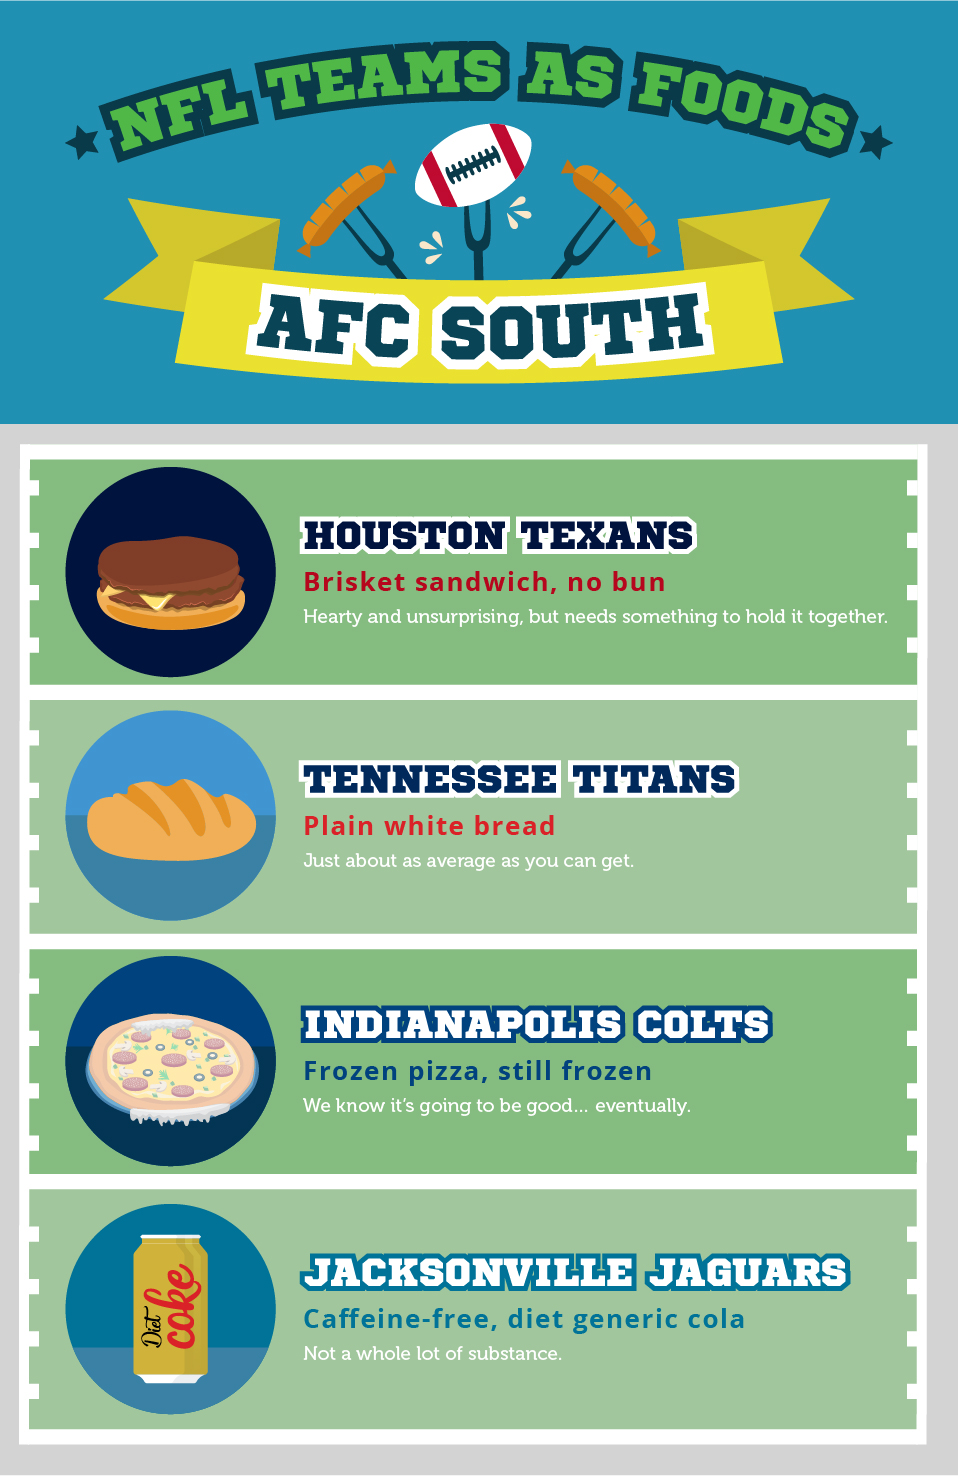 NFL Teams as Food: AFC South